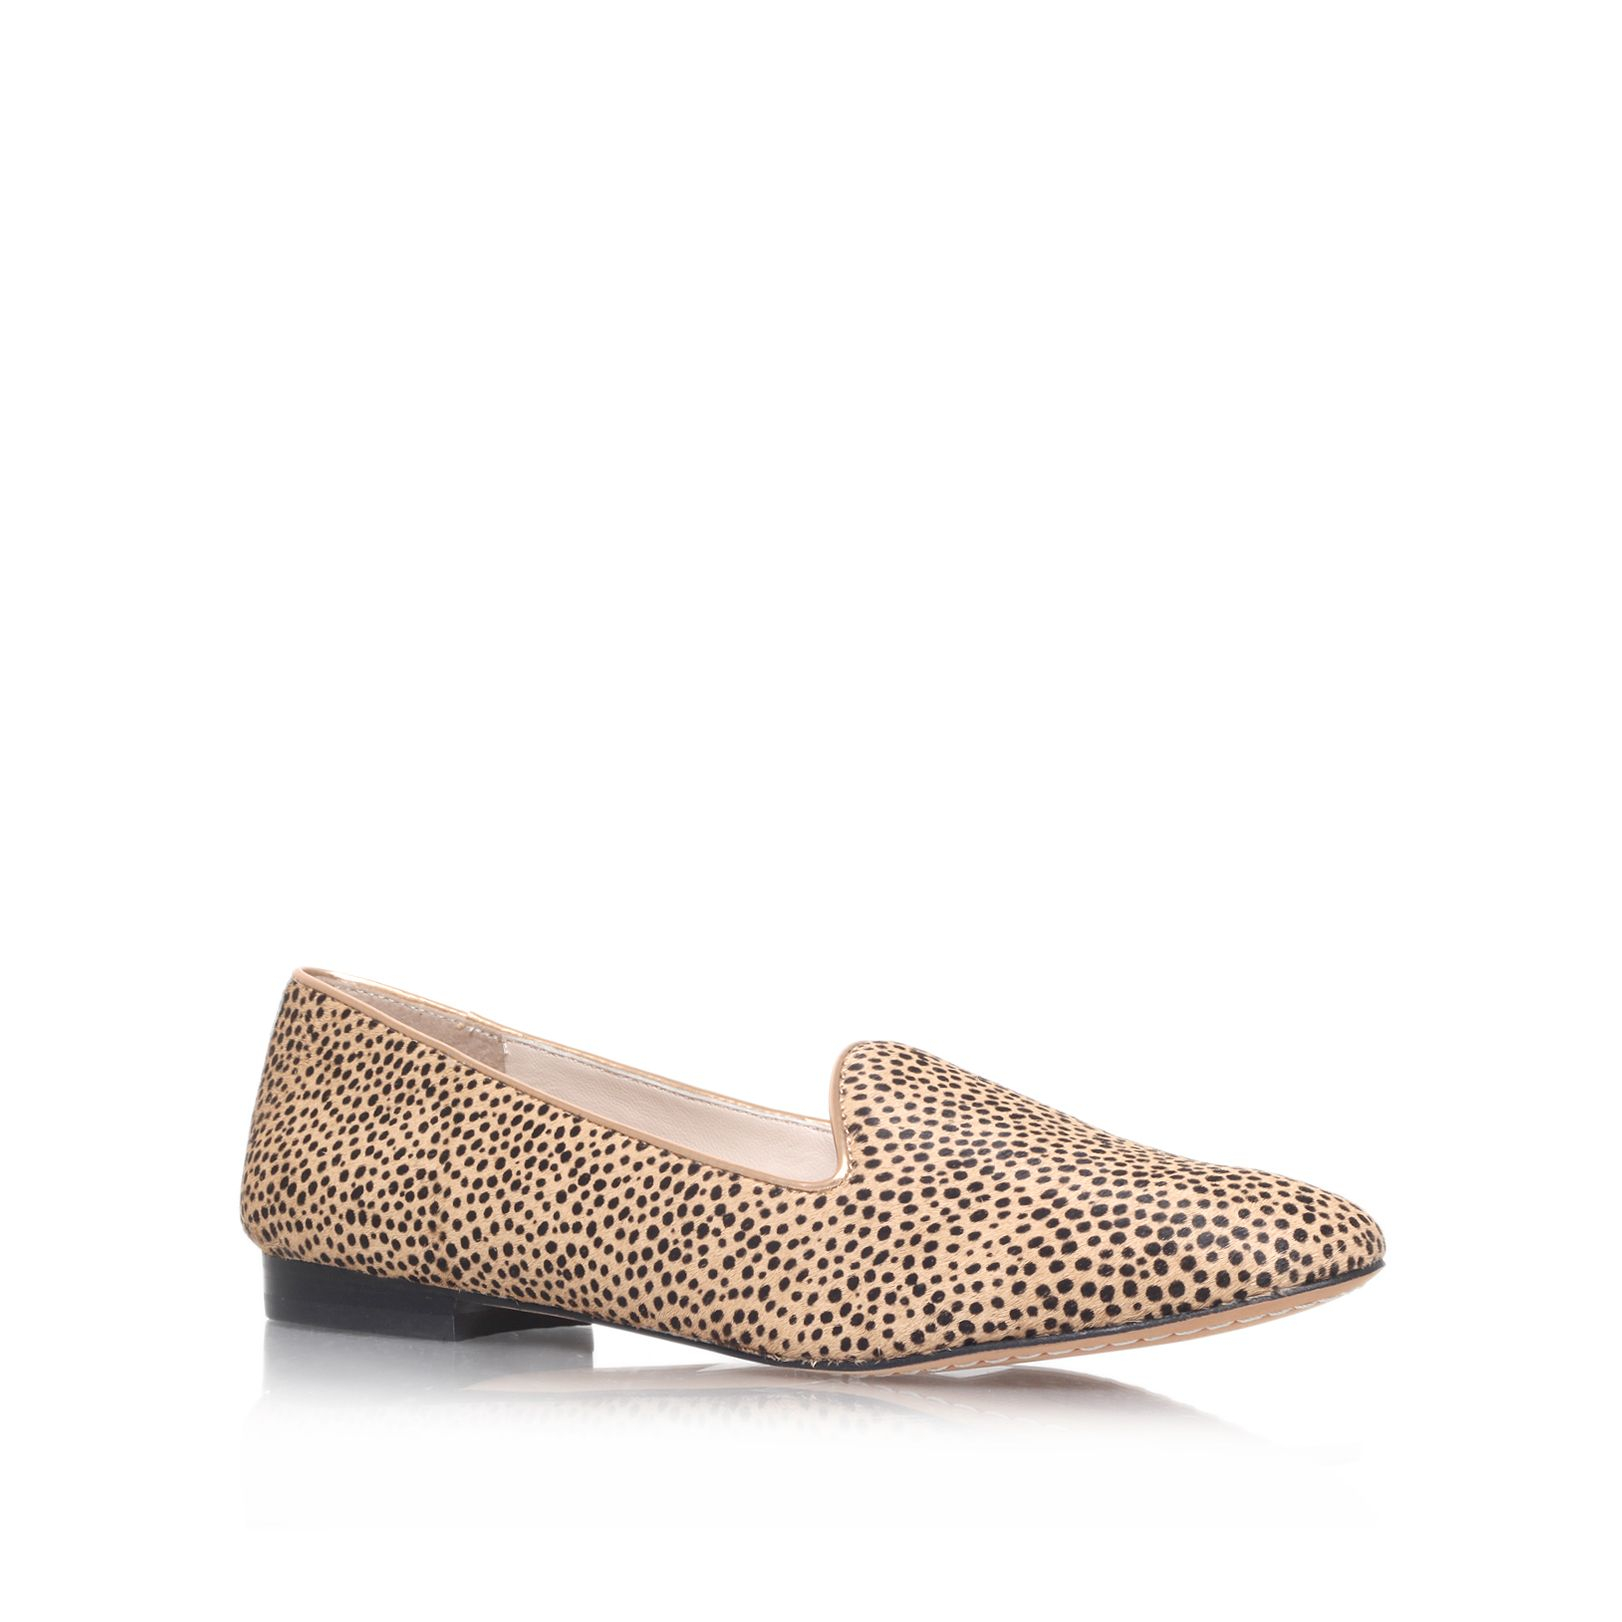 Vince Camuto Edmonton Flat Slipper Shoes In Animal Brown